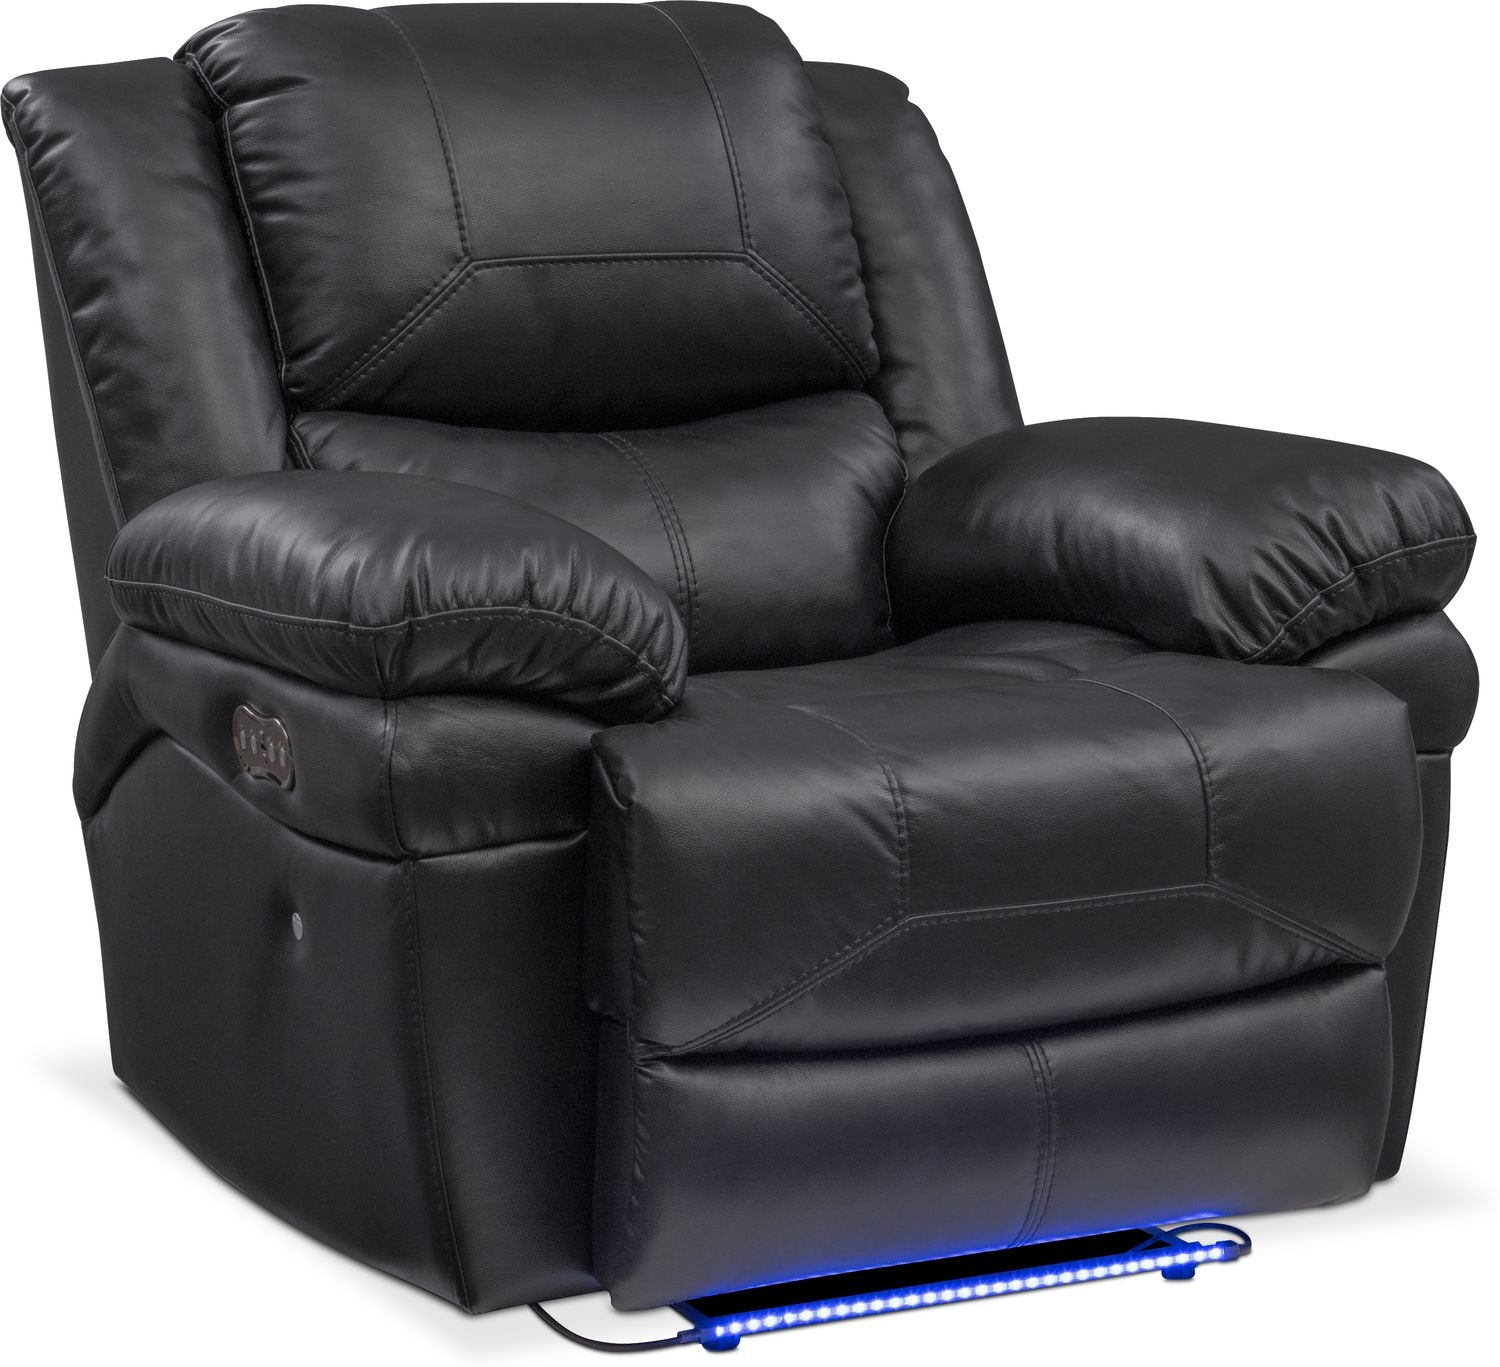 Monza Dual Power Reclining Sofa Reclining Loveseat And Recliner Set Black American